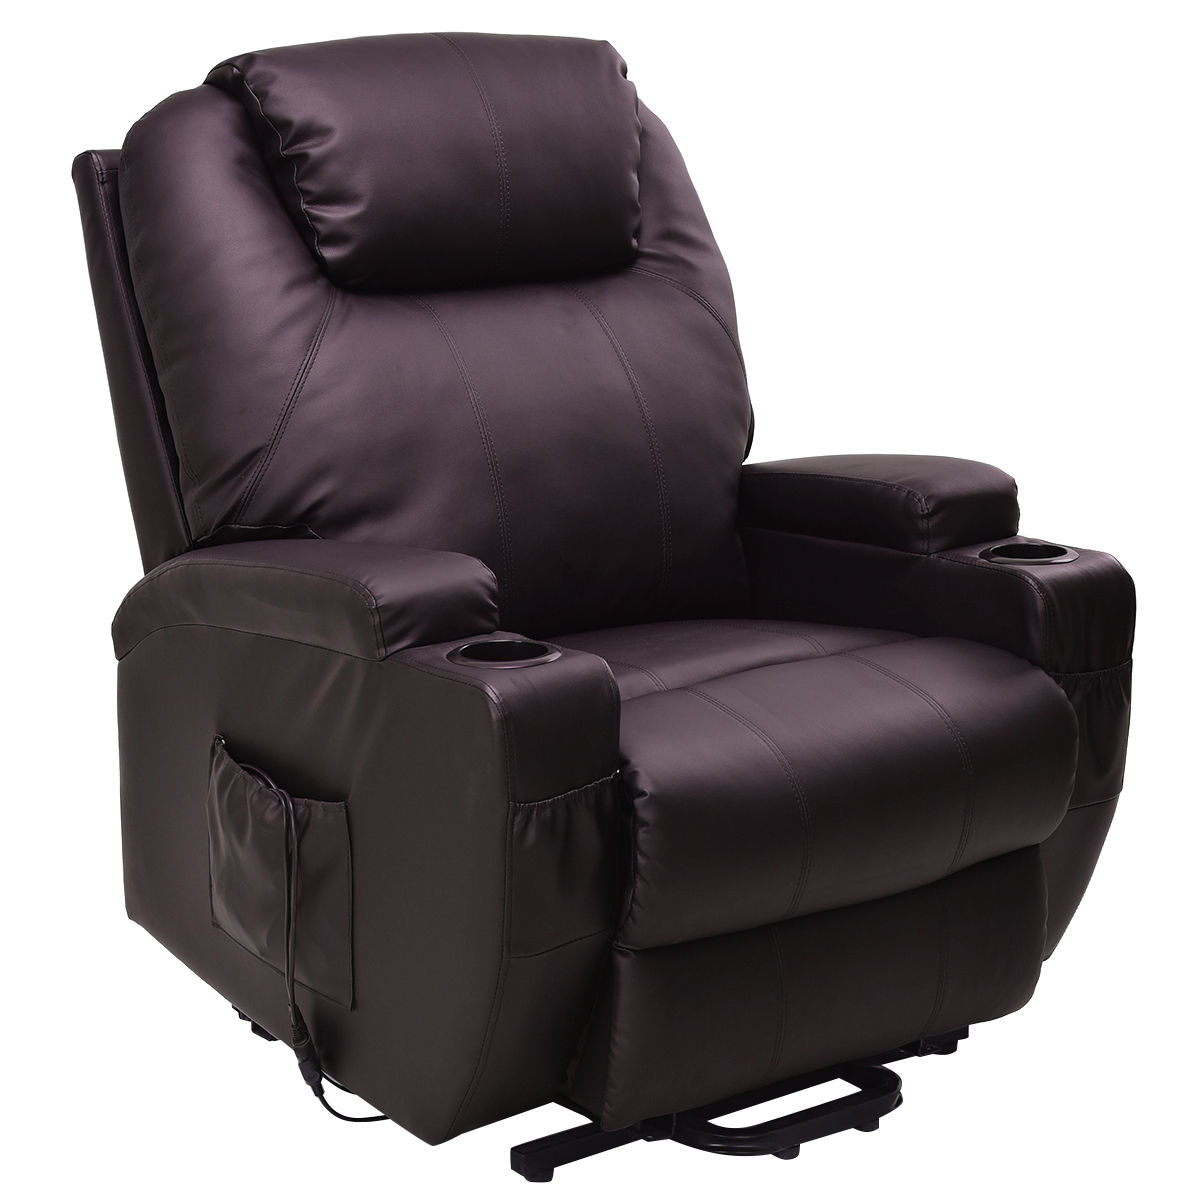 Costway Lift Chair Electric Power Recliner w/Remote and Cup Holder Living Room Furniture  sc 1 st  Walmart & Costway Lift Chair Electric Power Recliner w/Remote and Cup Holder ... islam-shia.org